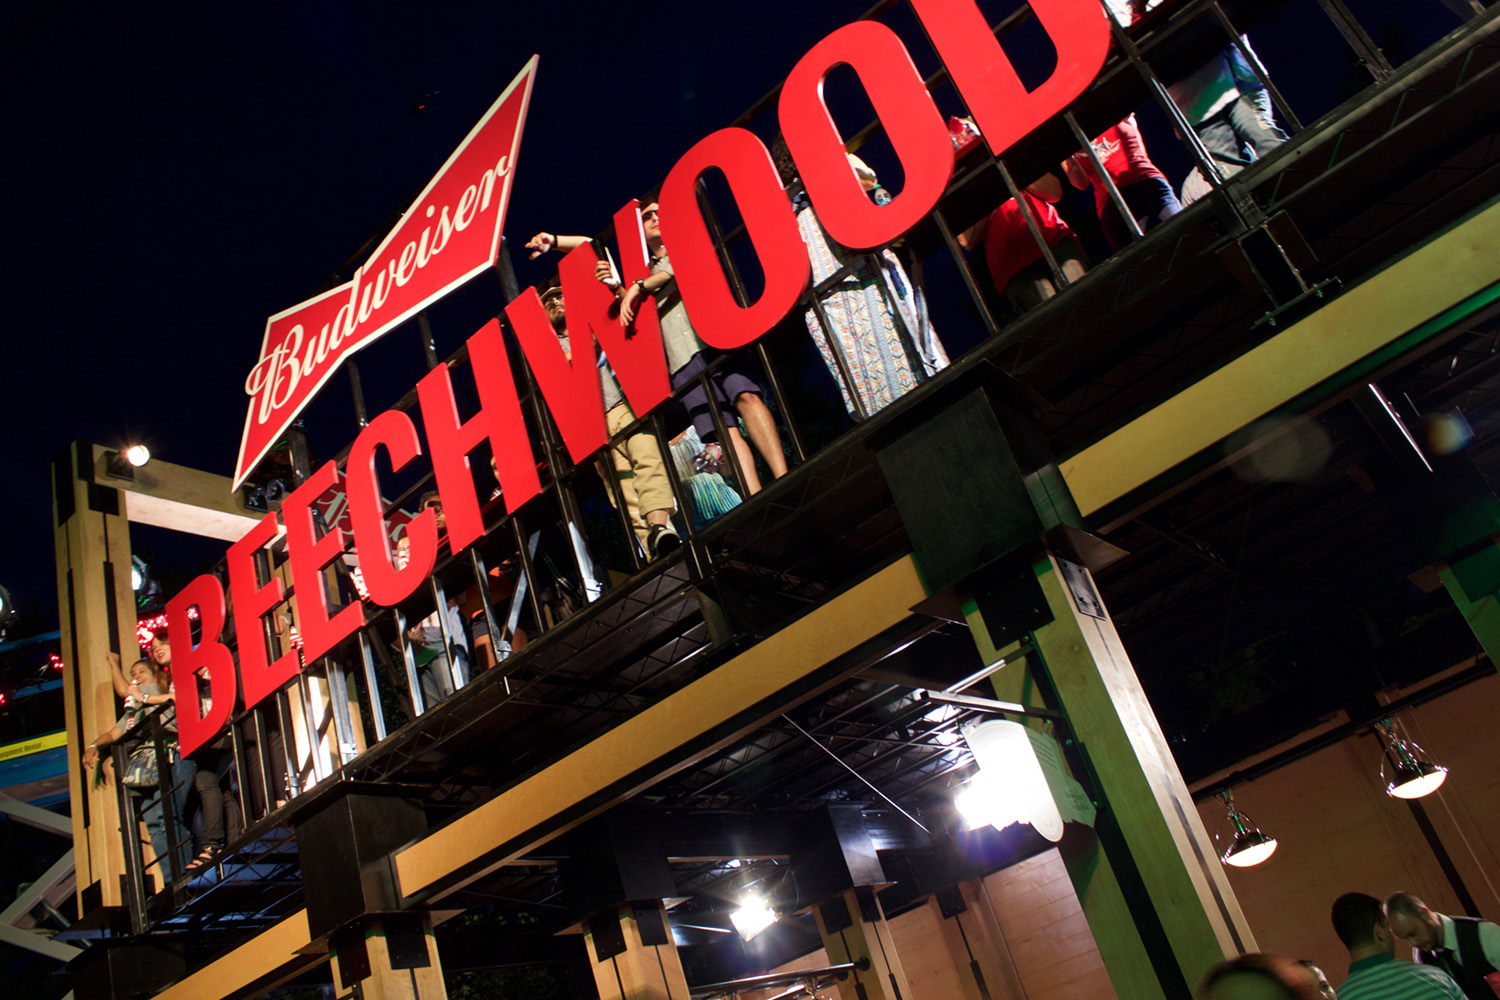 Budweiser Beechwood House during the concert